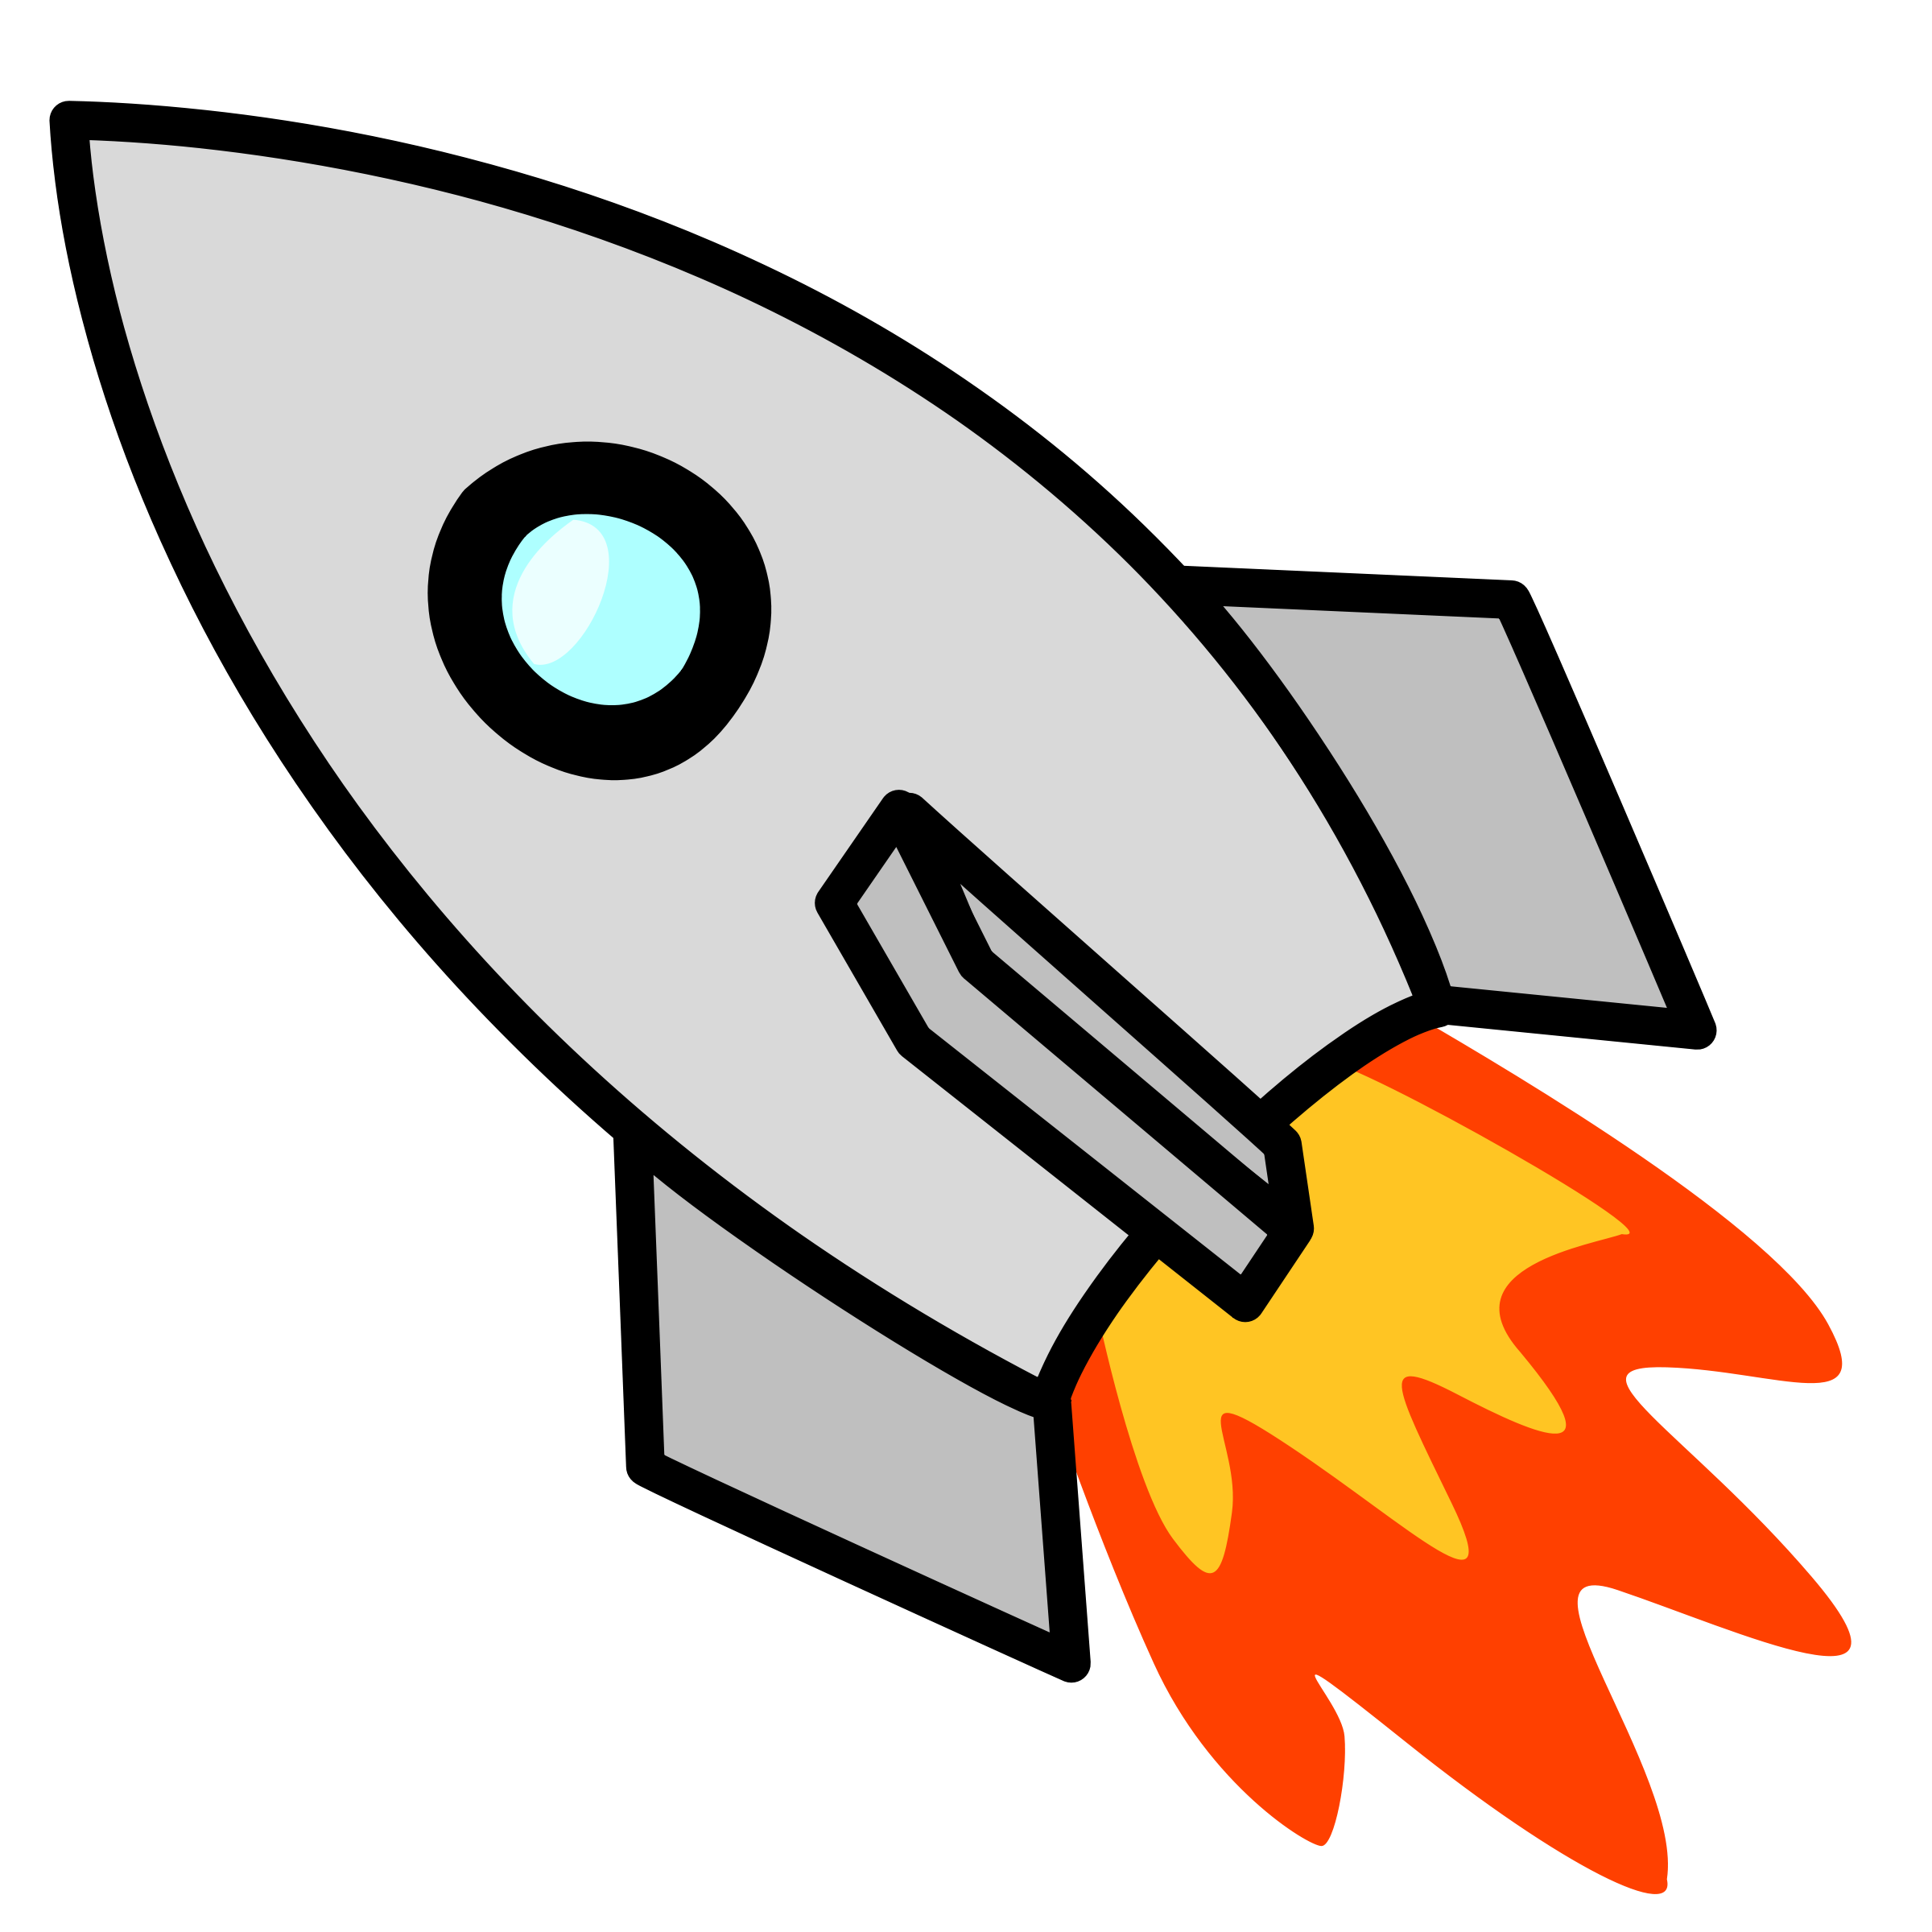 Clipart Of Rocket Ship Shapes Clipart Be-Clipart Of Rocket Ship Shapes Clipart Best-0